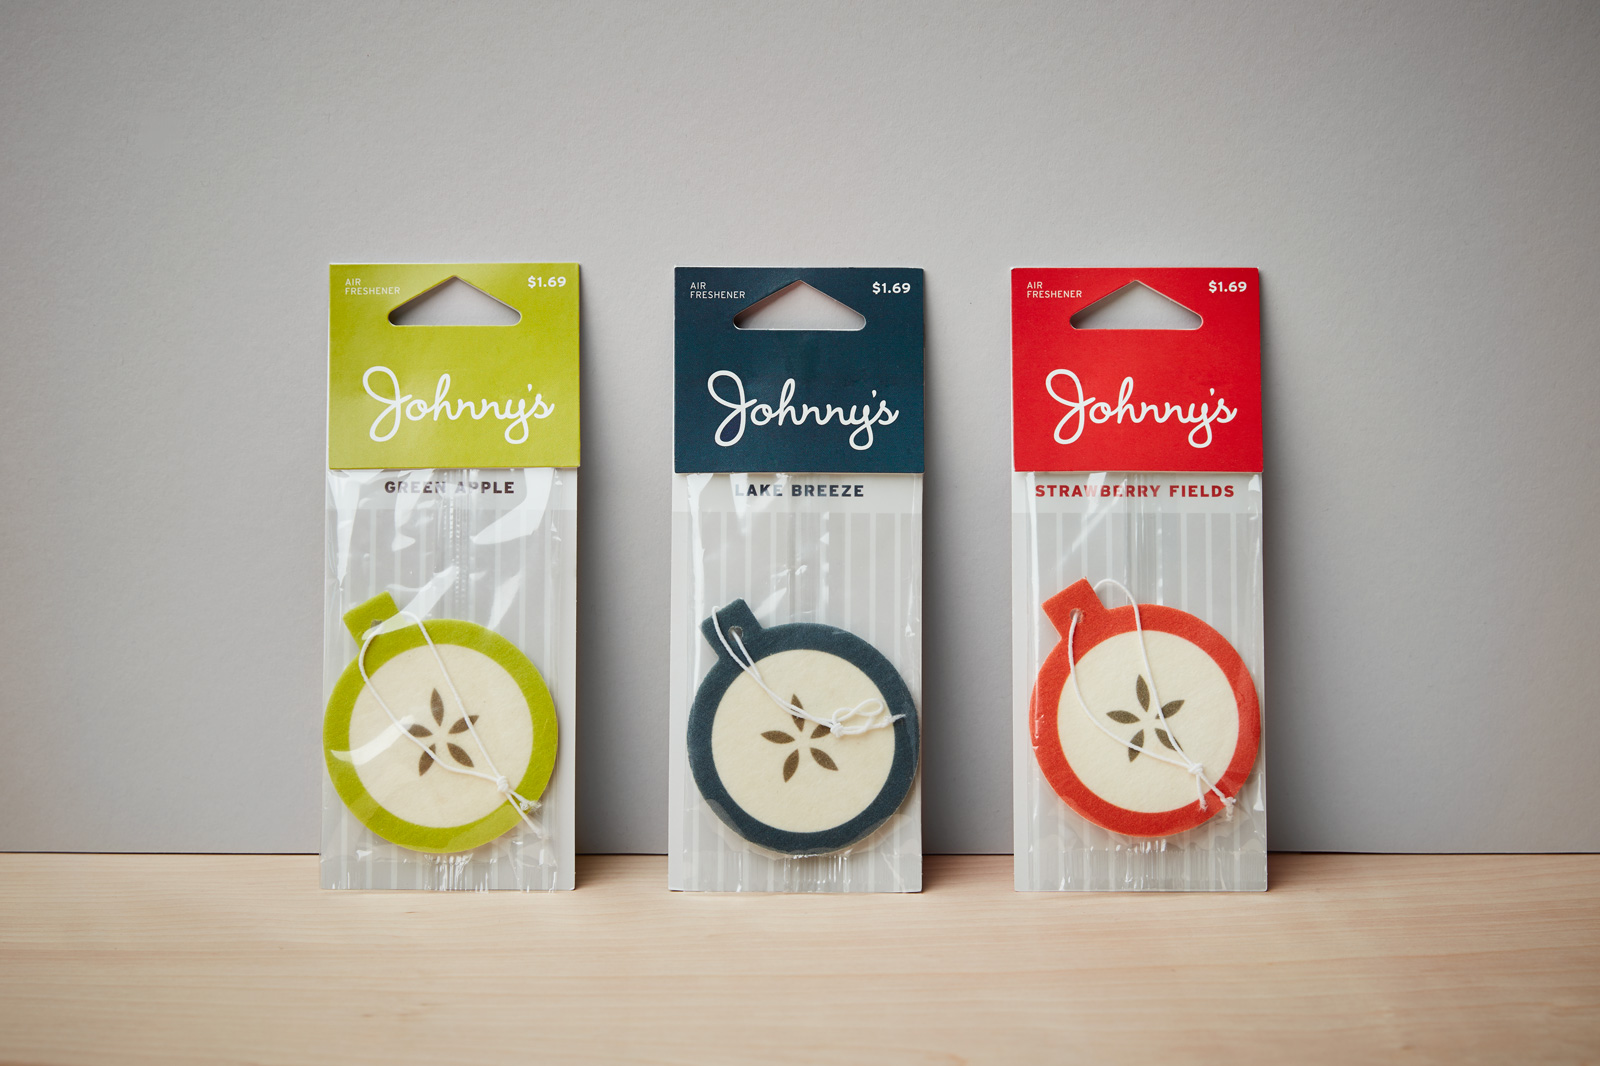 Set of three Johnny's car air fresheners in green (green apple), blue (Lake Breeze) and red (strawberry fields).